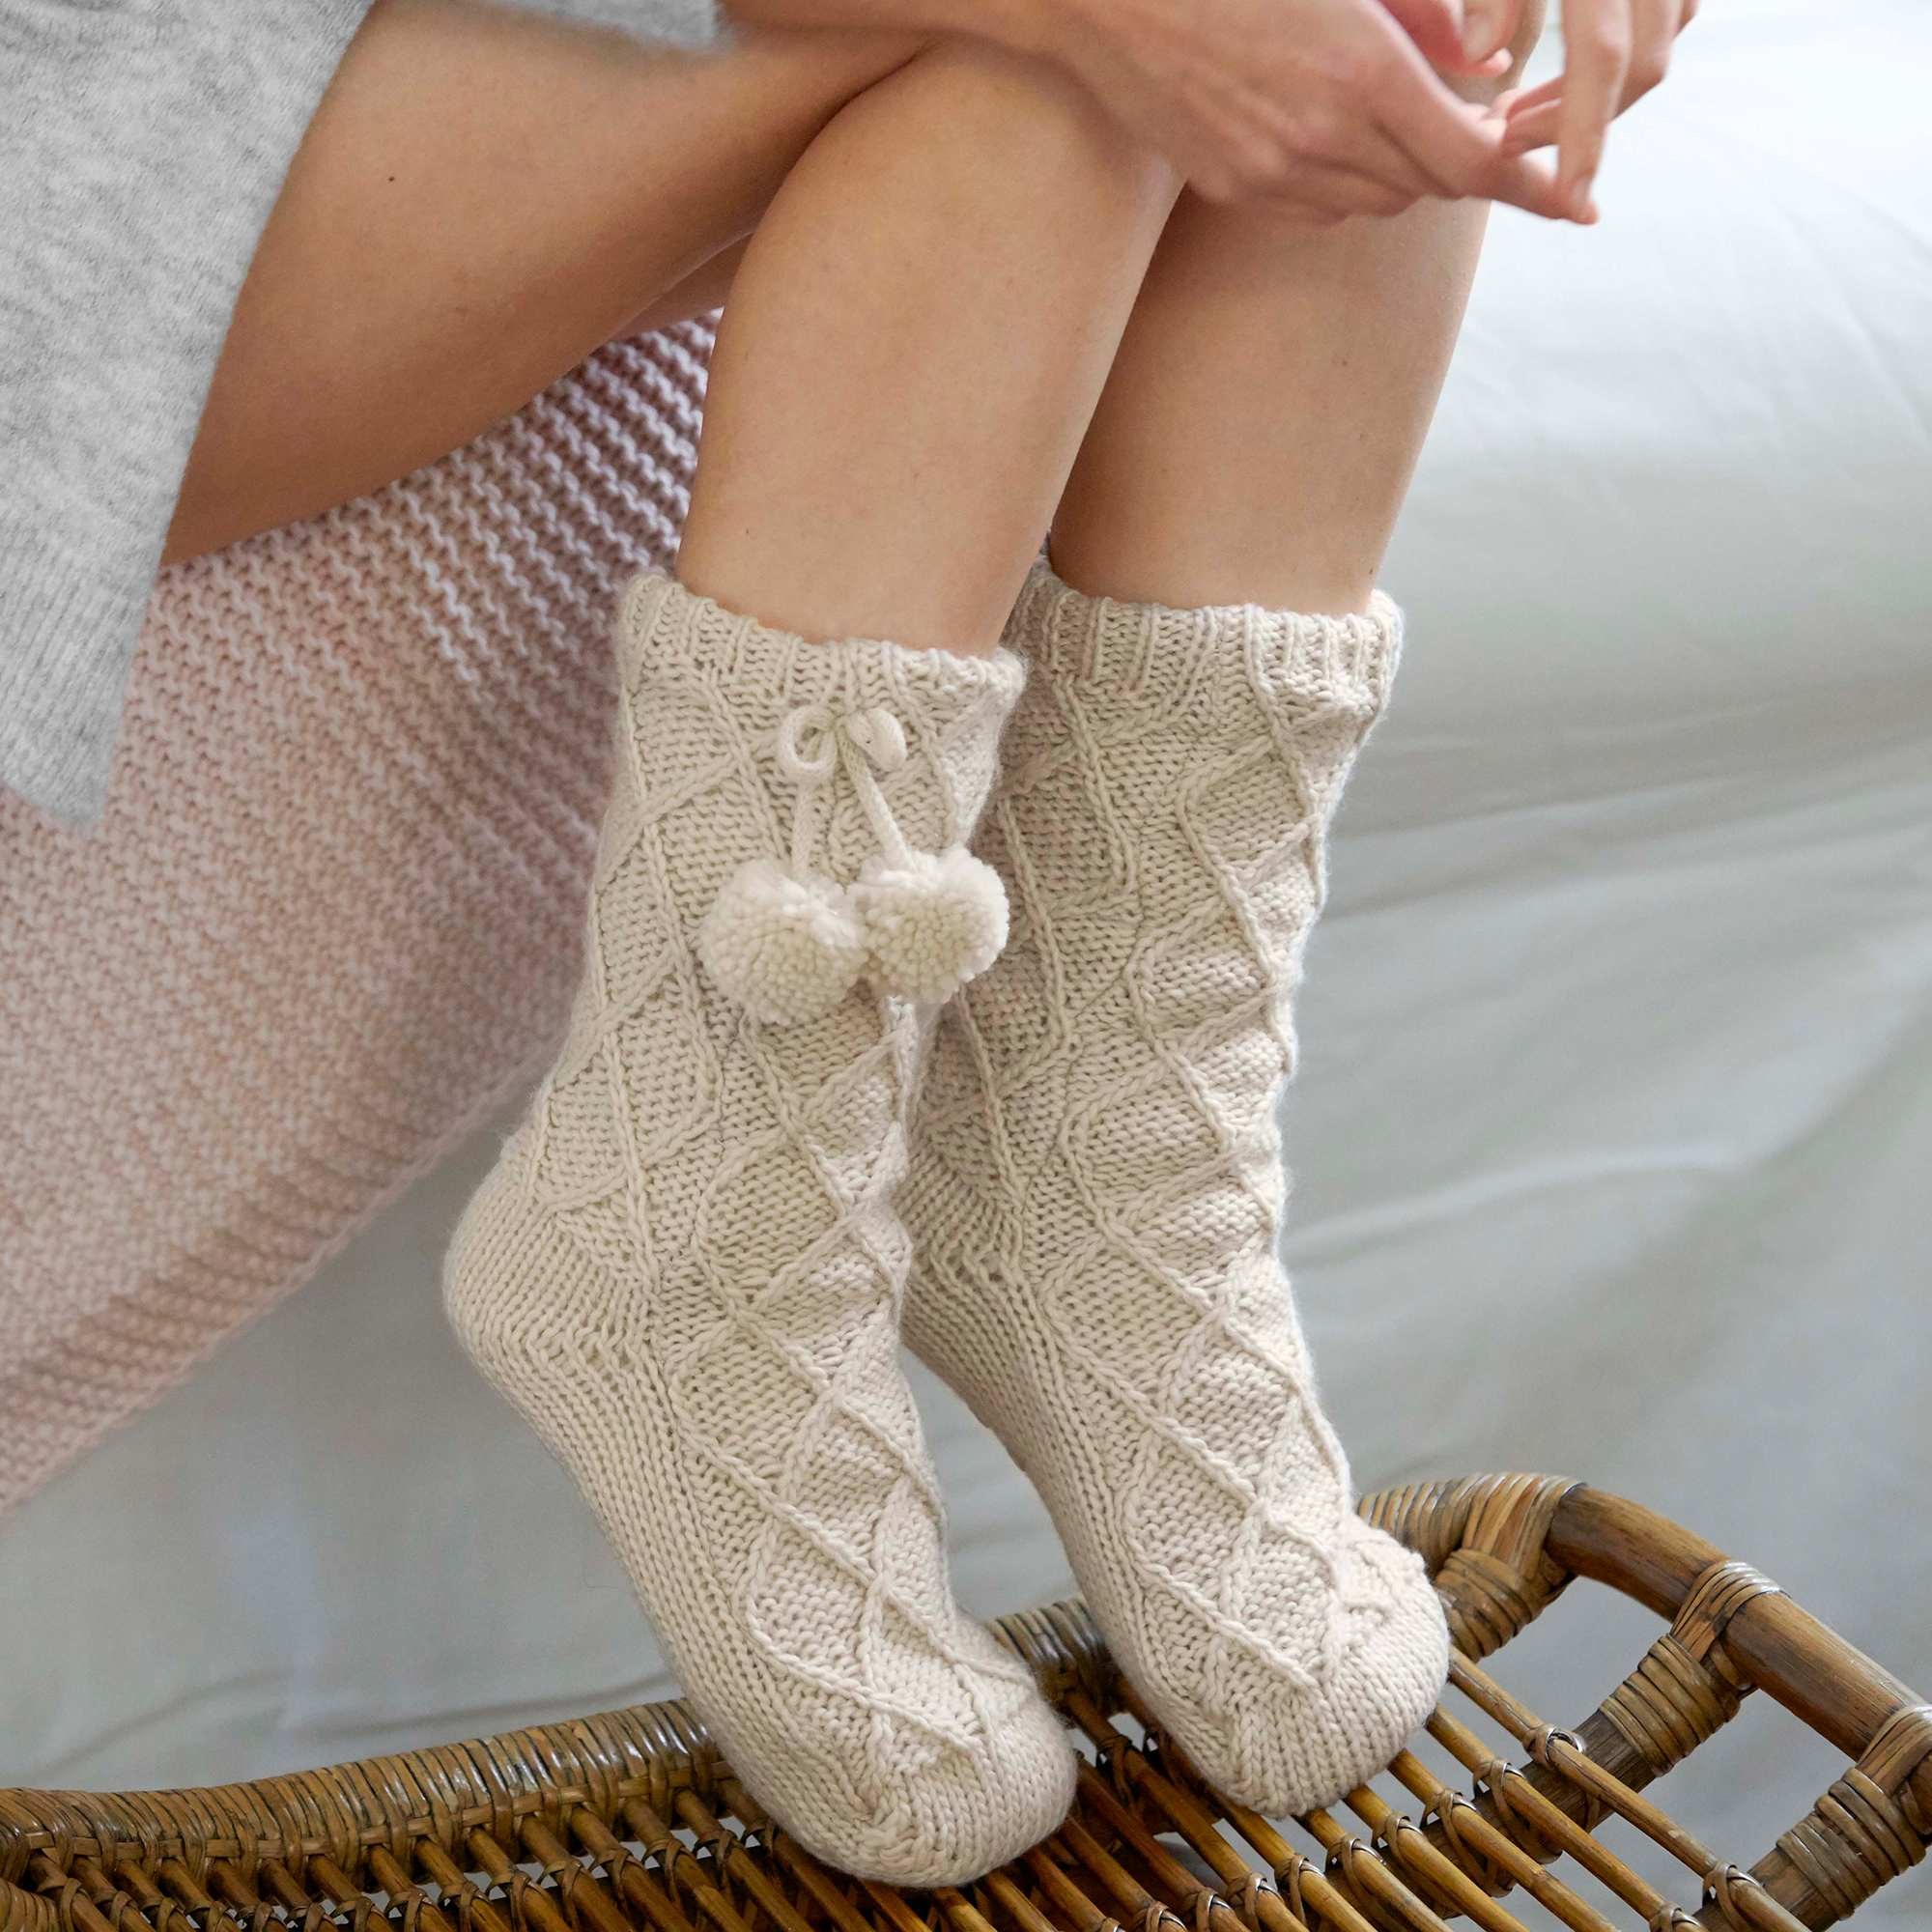 chaussettes chaussons doubl s sherpa femme kiabi 8 00. Black Bedroom Furniture Sets. Home Design Ideas